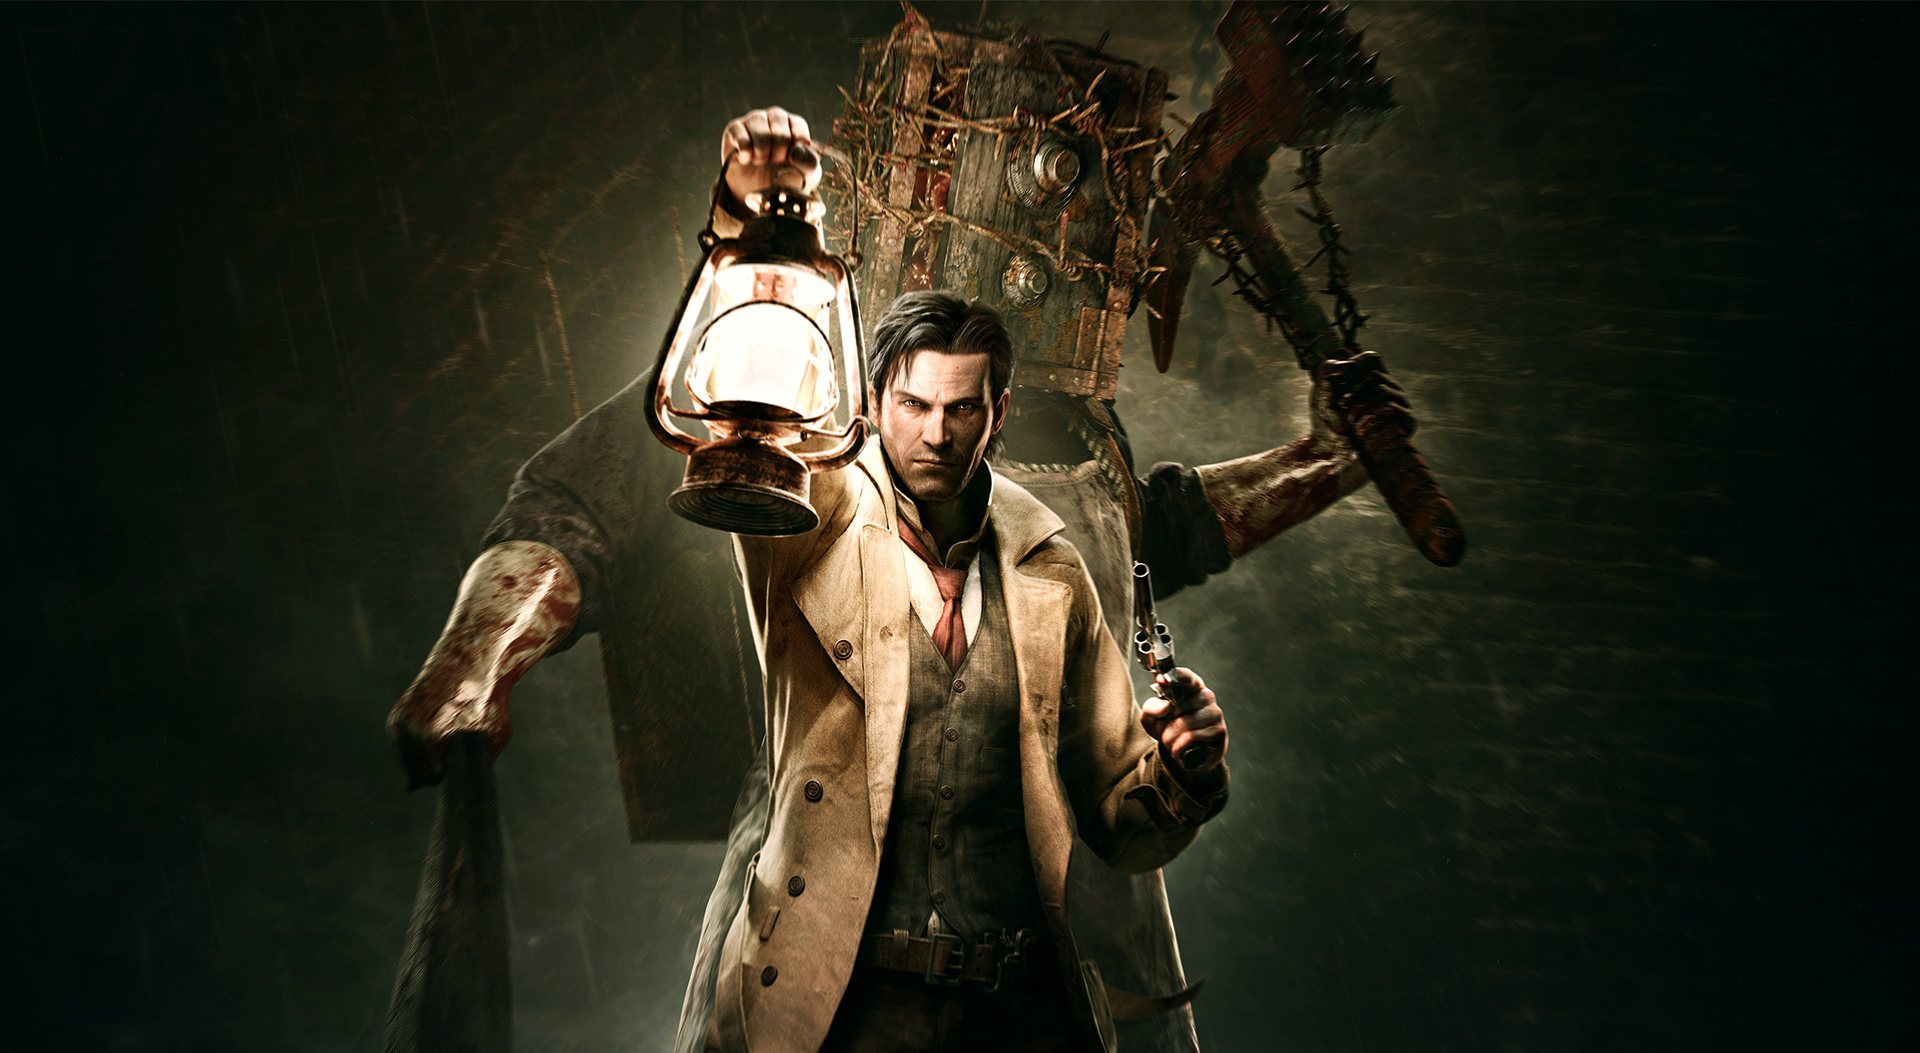 The Evil Within Wallpapers Or Desktop Backgrounds: The Evil Within The Keeper And Sebastian Castellanos Wallpaper